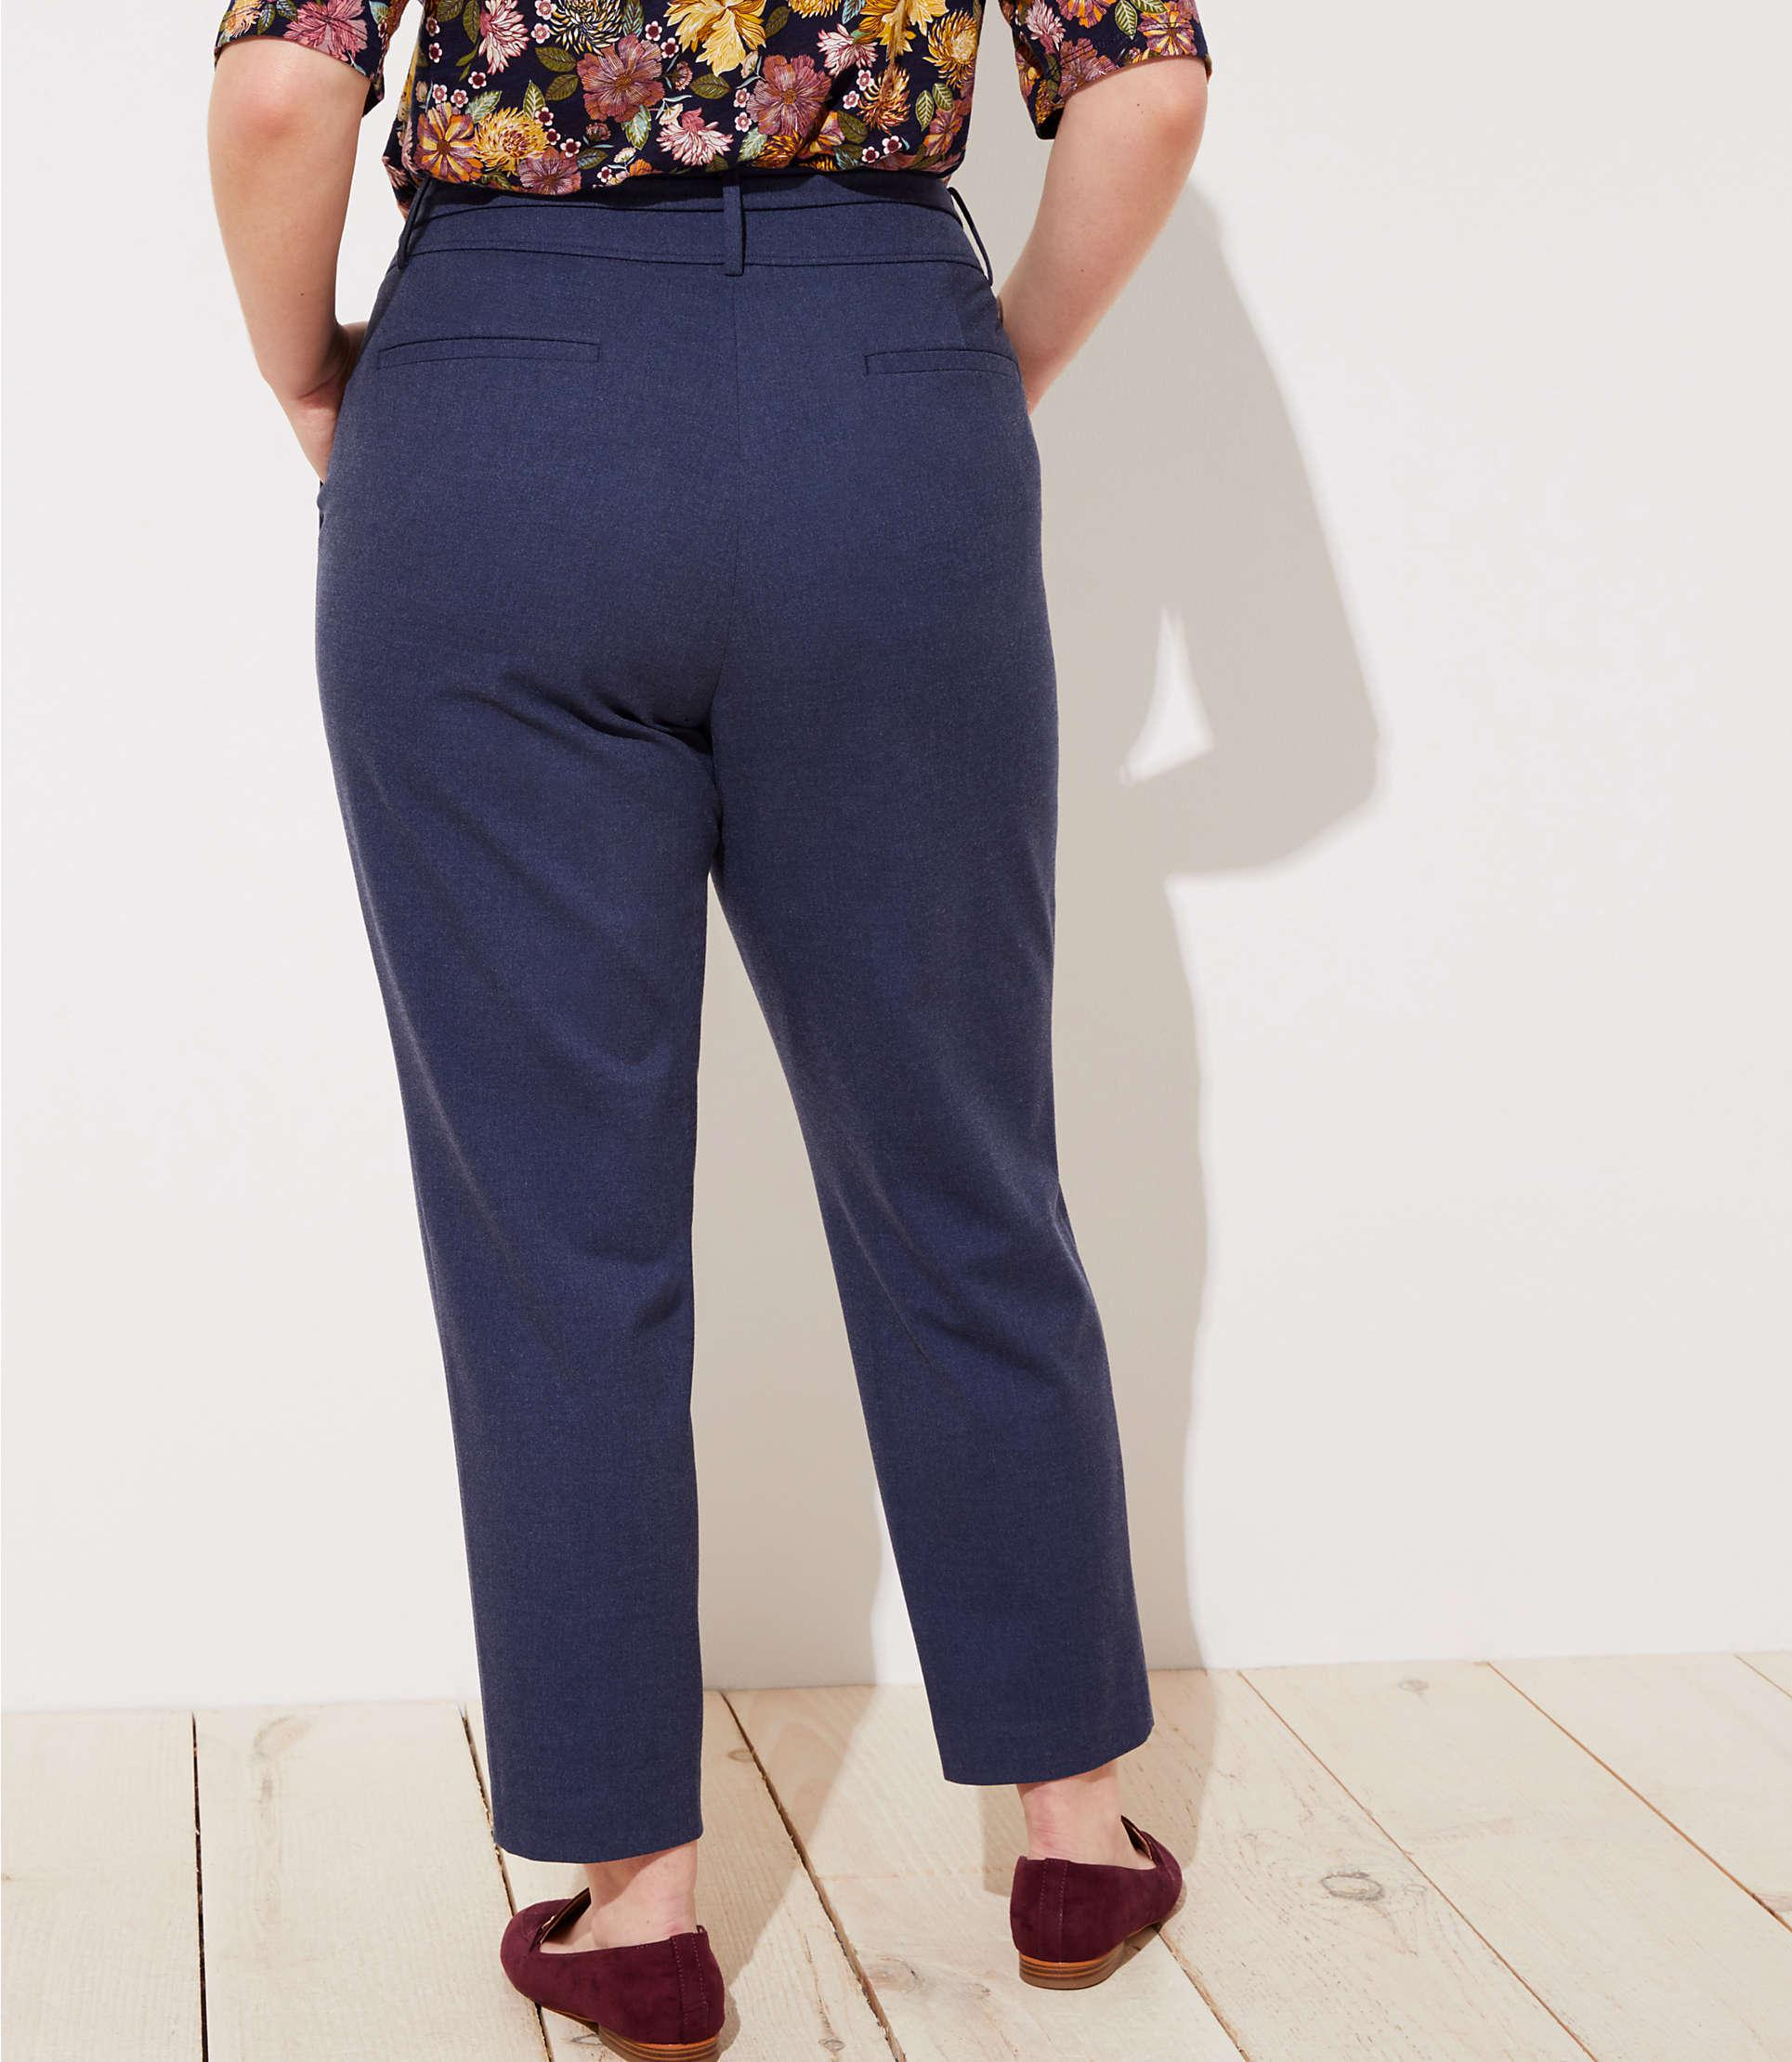 bbb985d139 LOFT - Blue Plus Slim Tie Waist Pencil Pants In Marisa Fit - Lyst. View  fullscreen